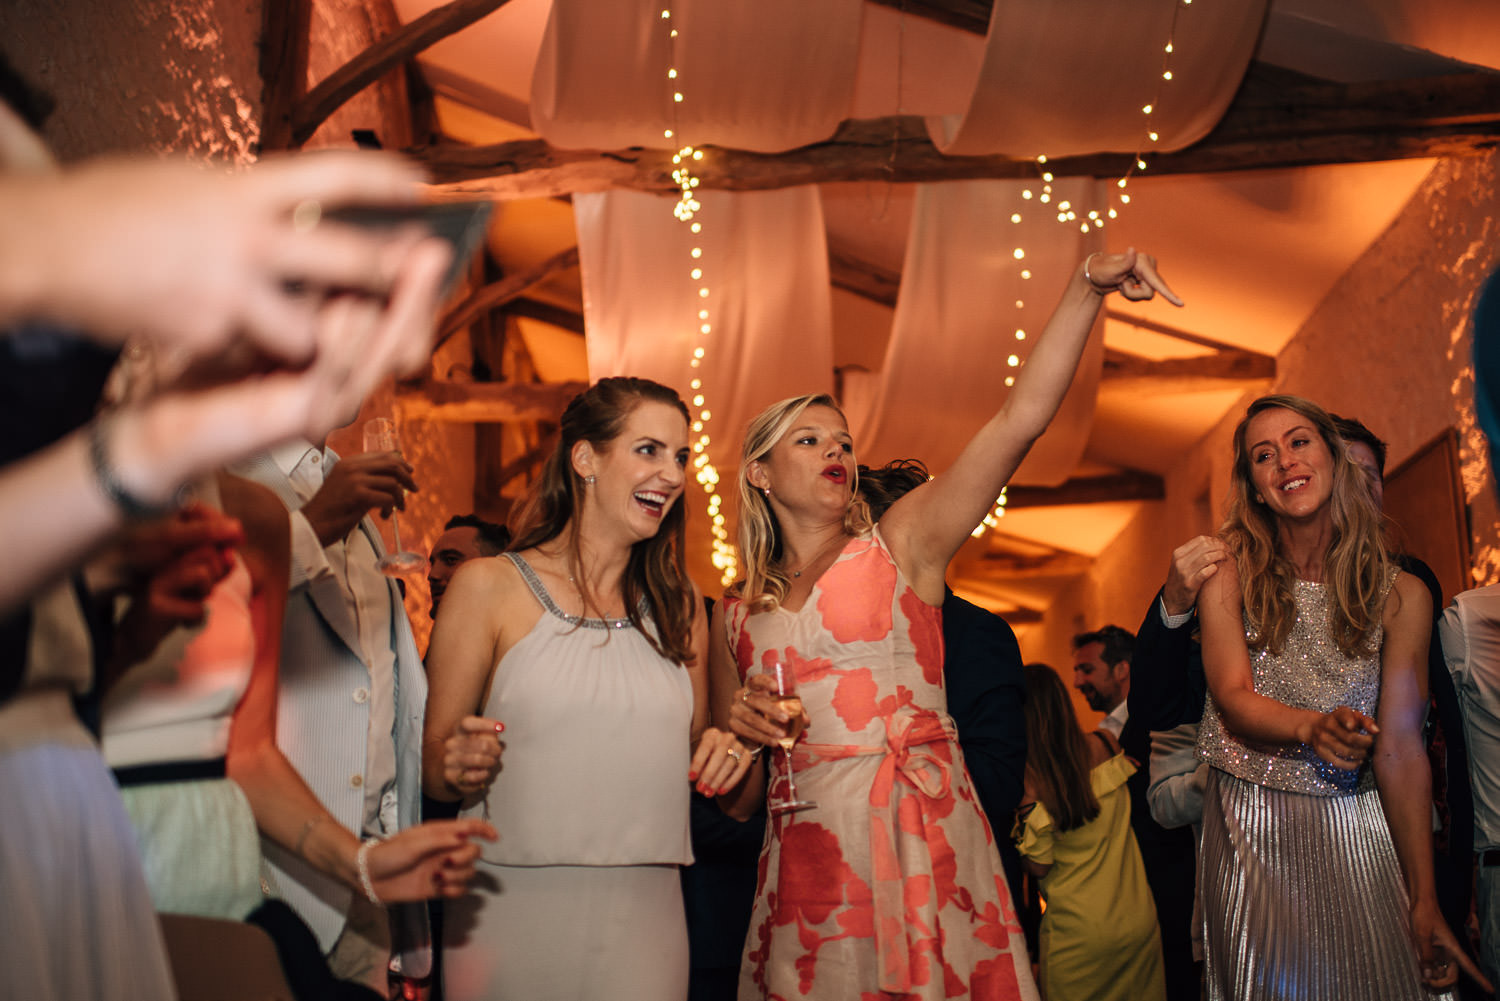 Guests dancing in stables in chateau de la bourlie wedding by french destination wedding photographer the shannons photography